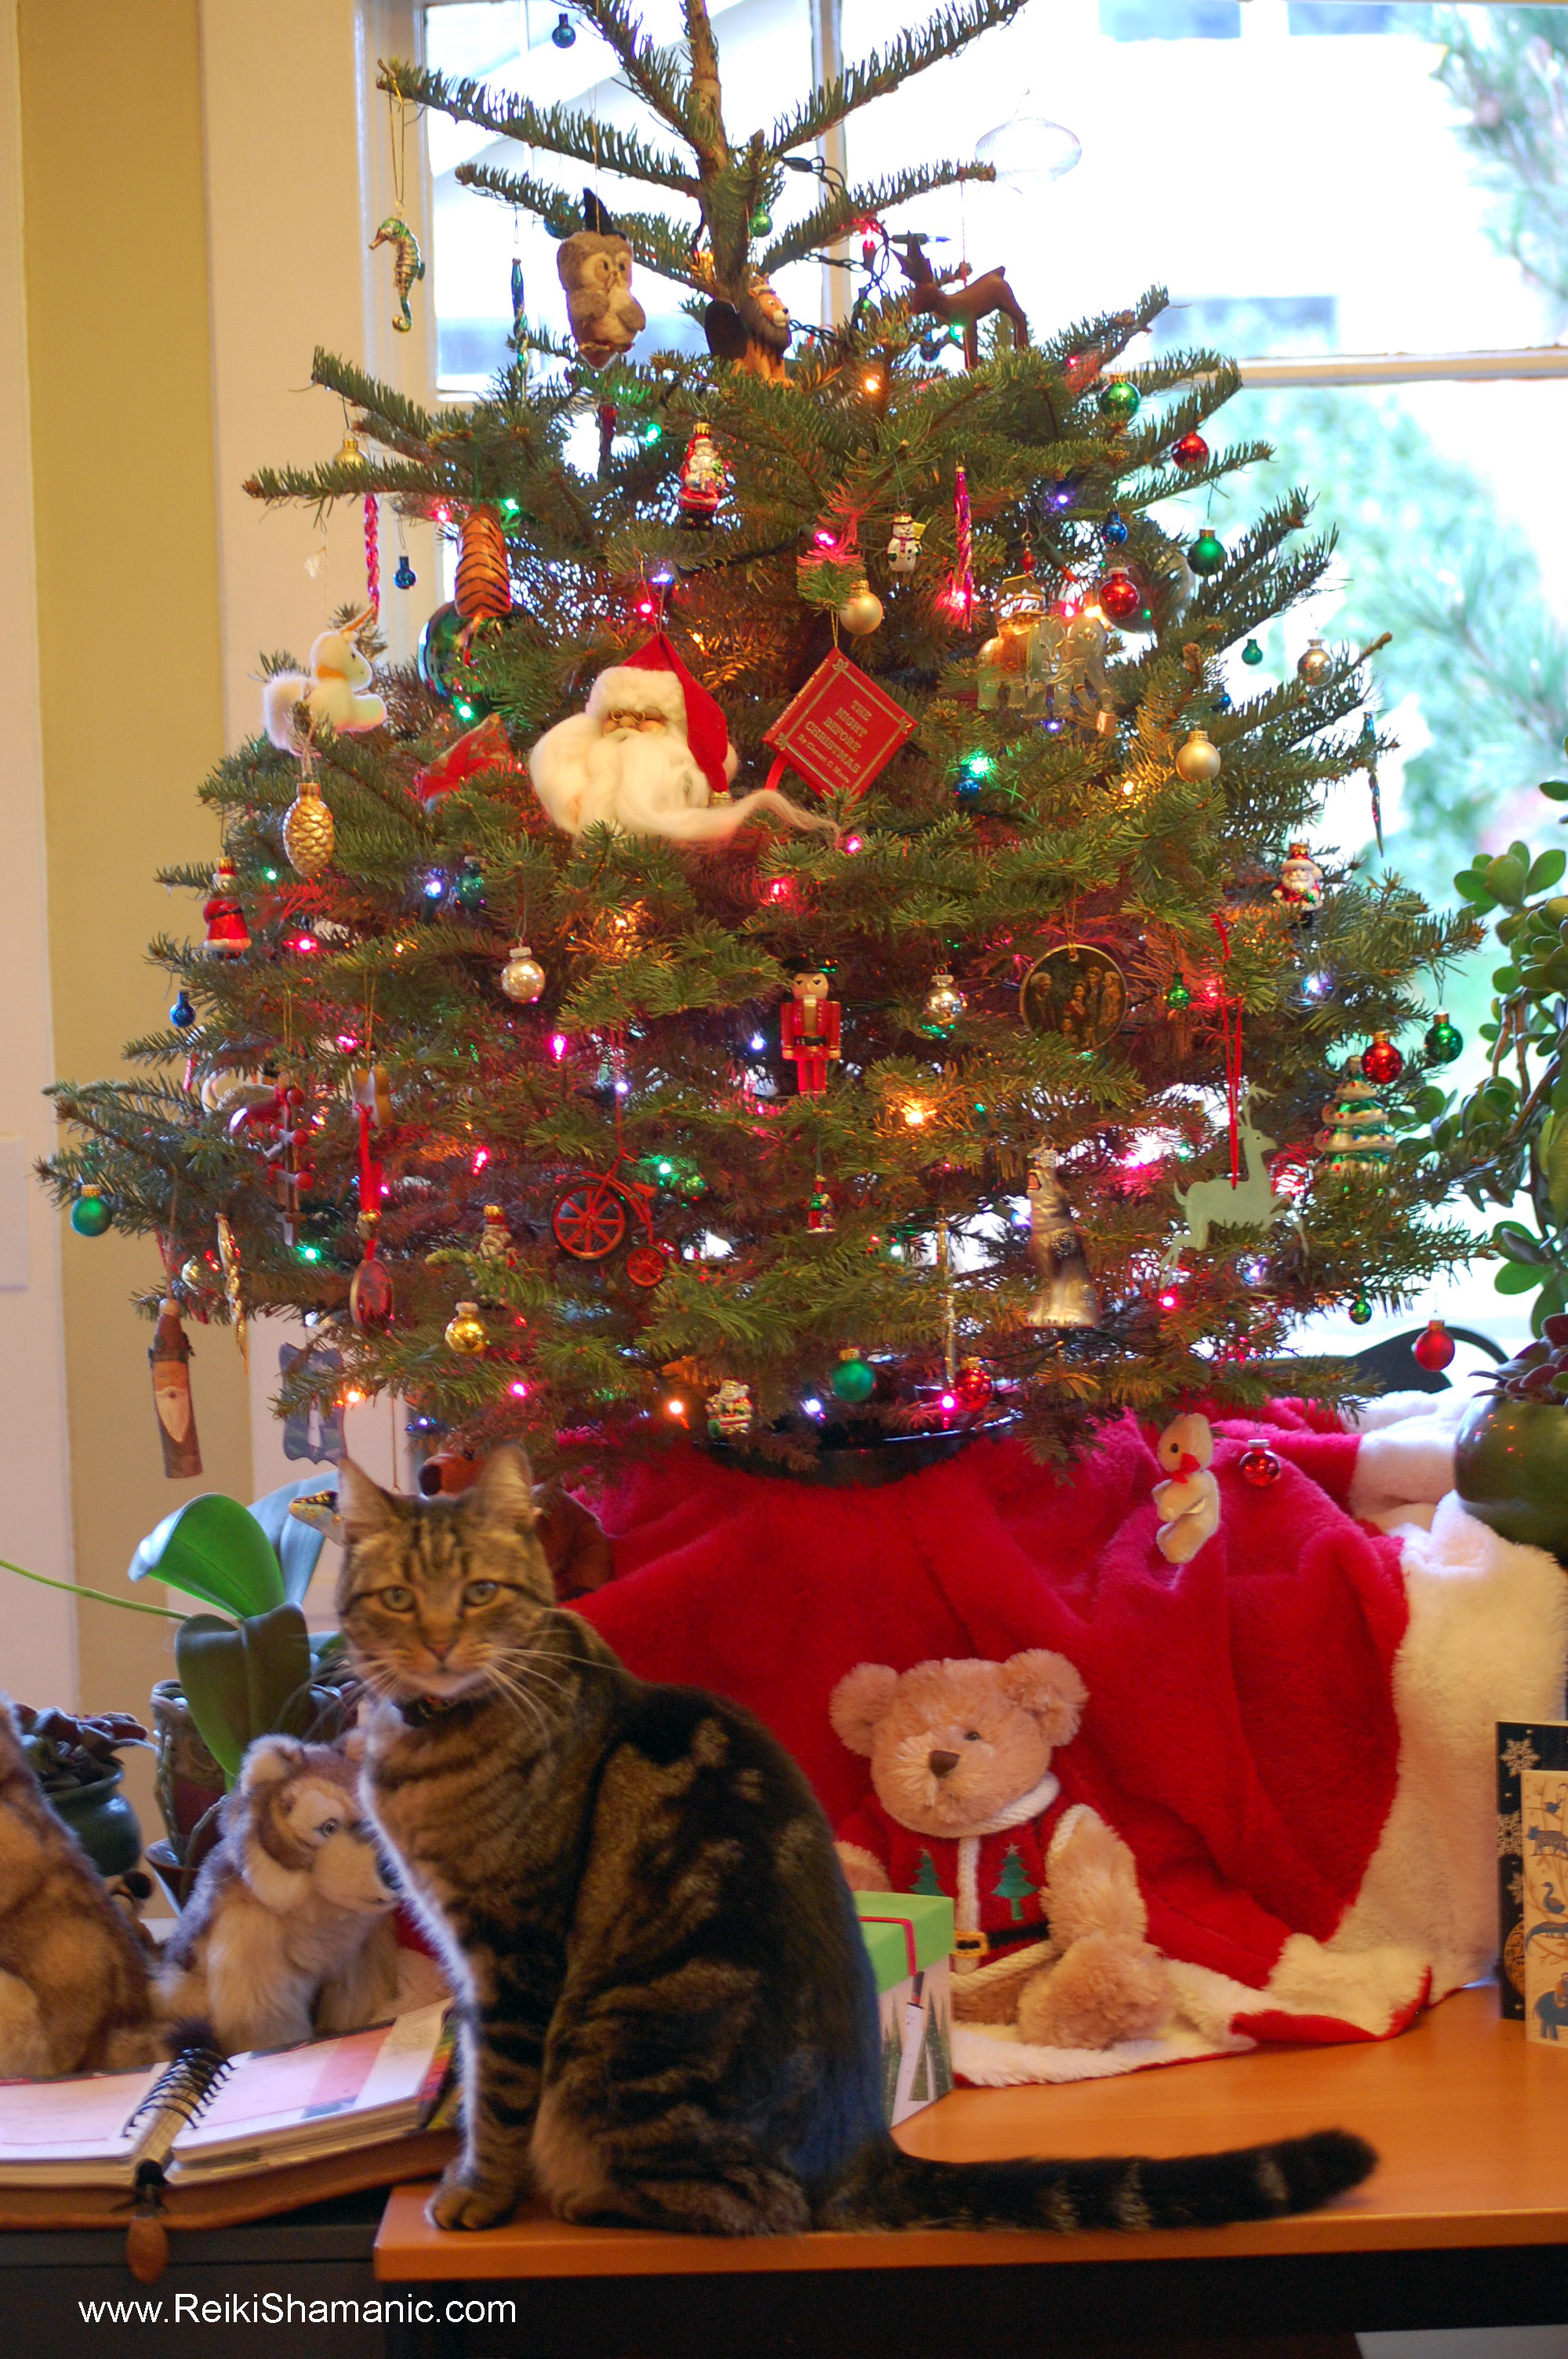 Manitou photobombs the Christmas Tree